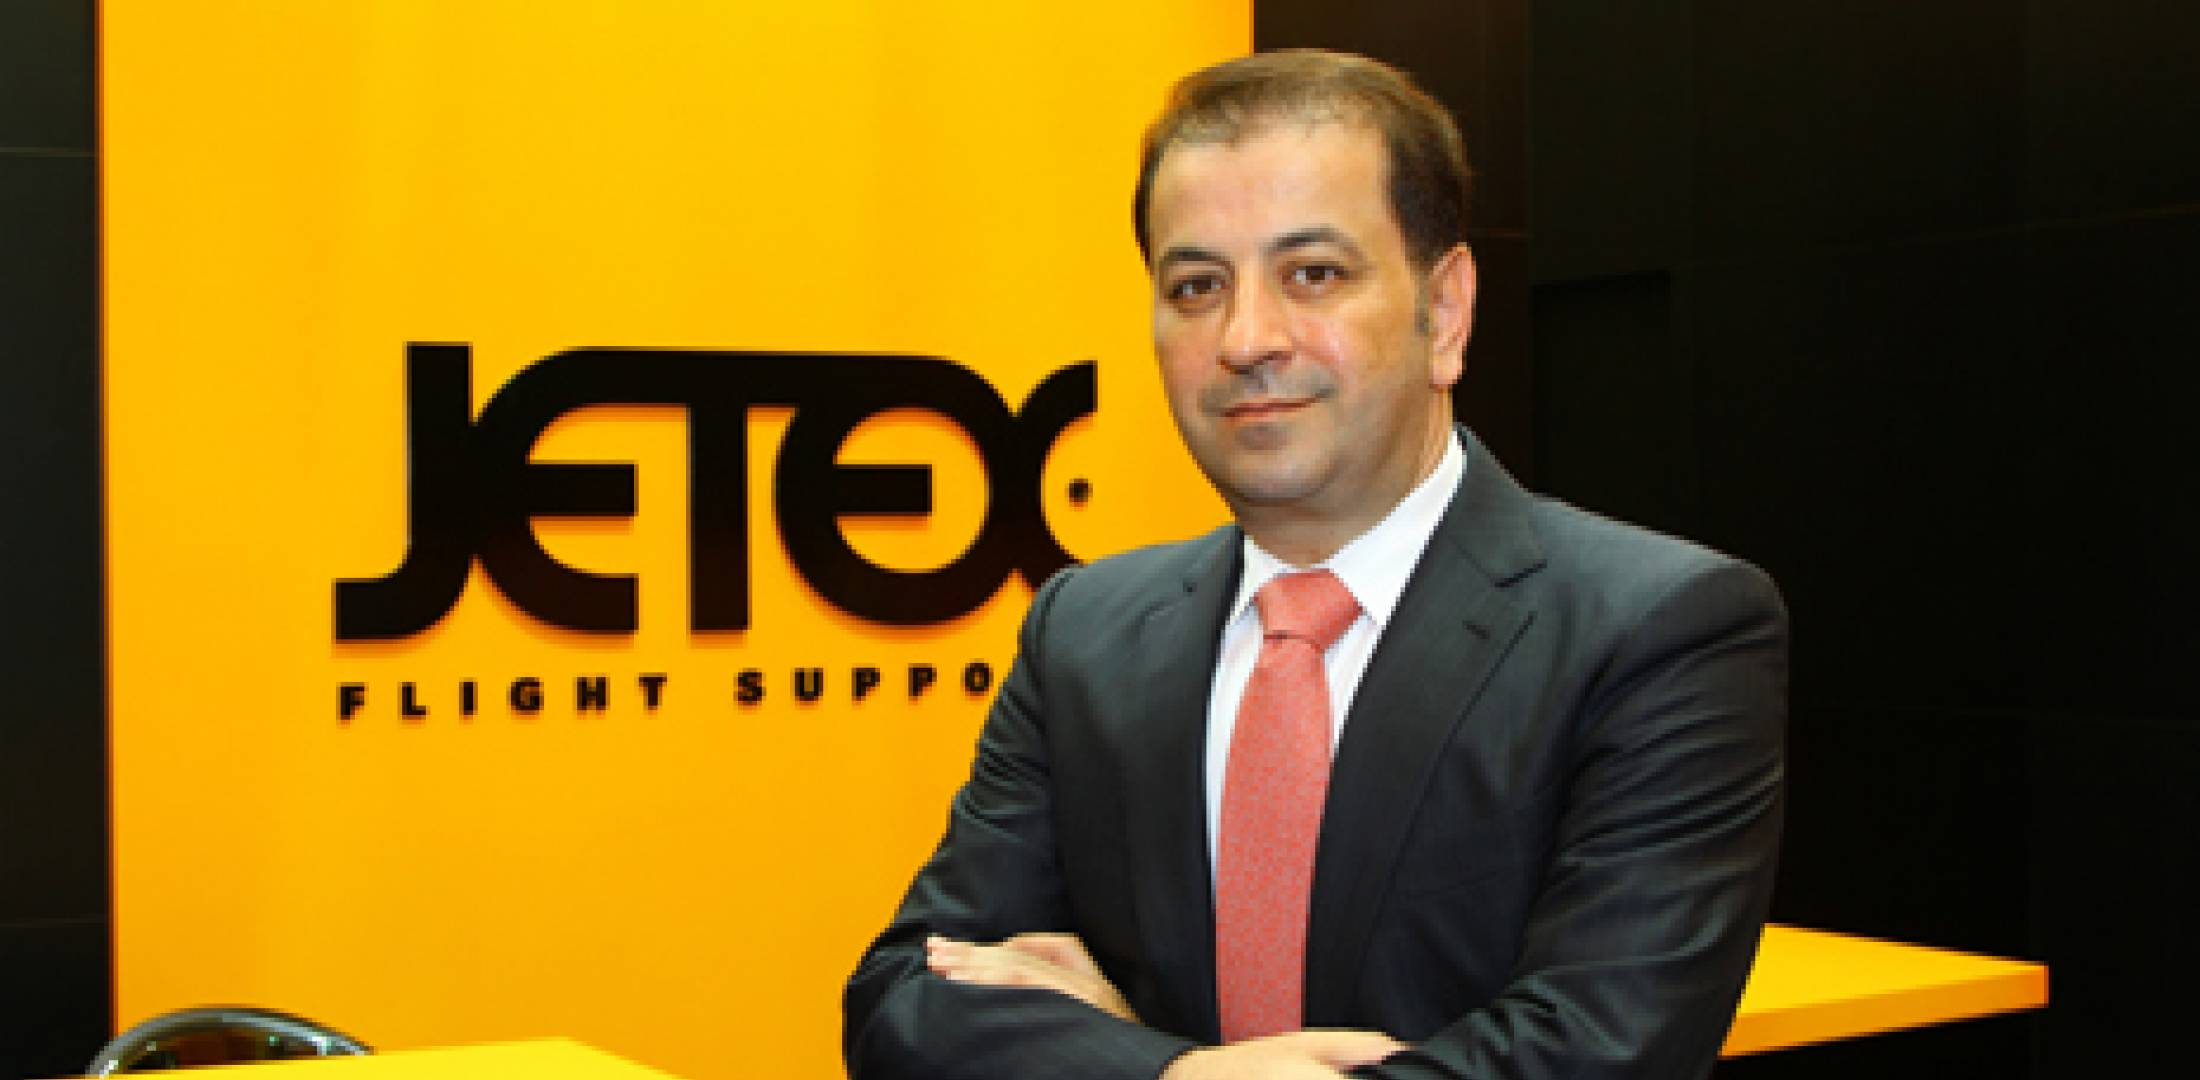 Jetex president and CEO Adel Mardini